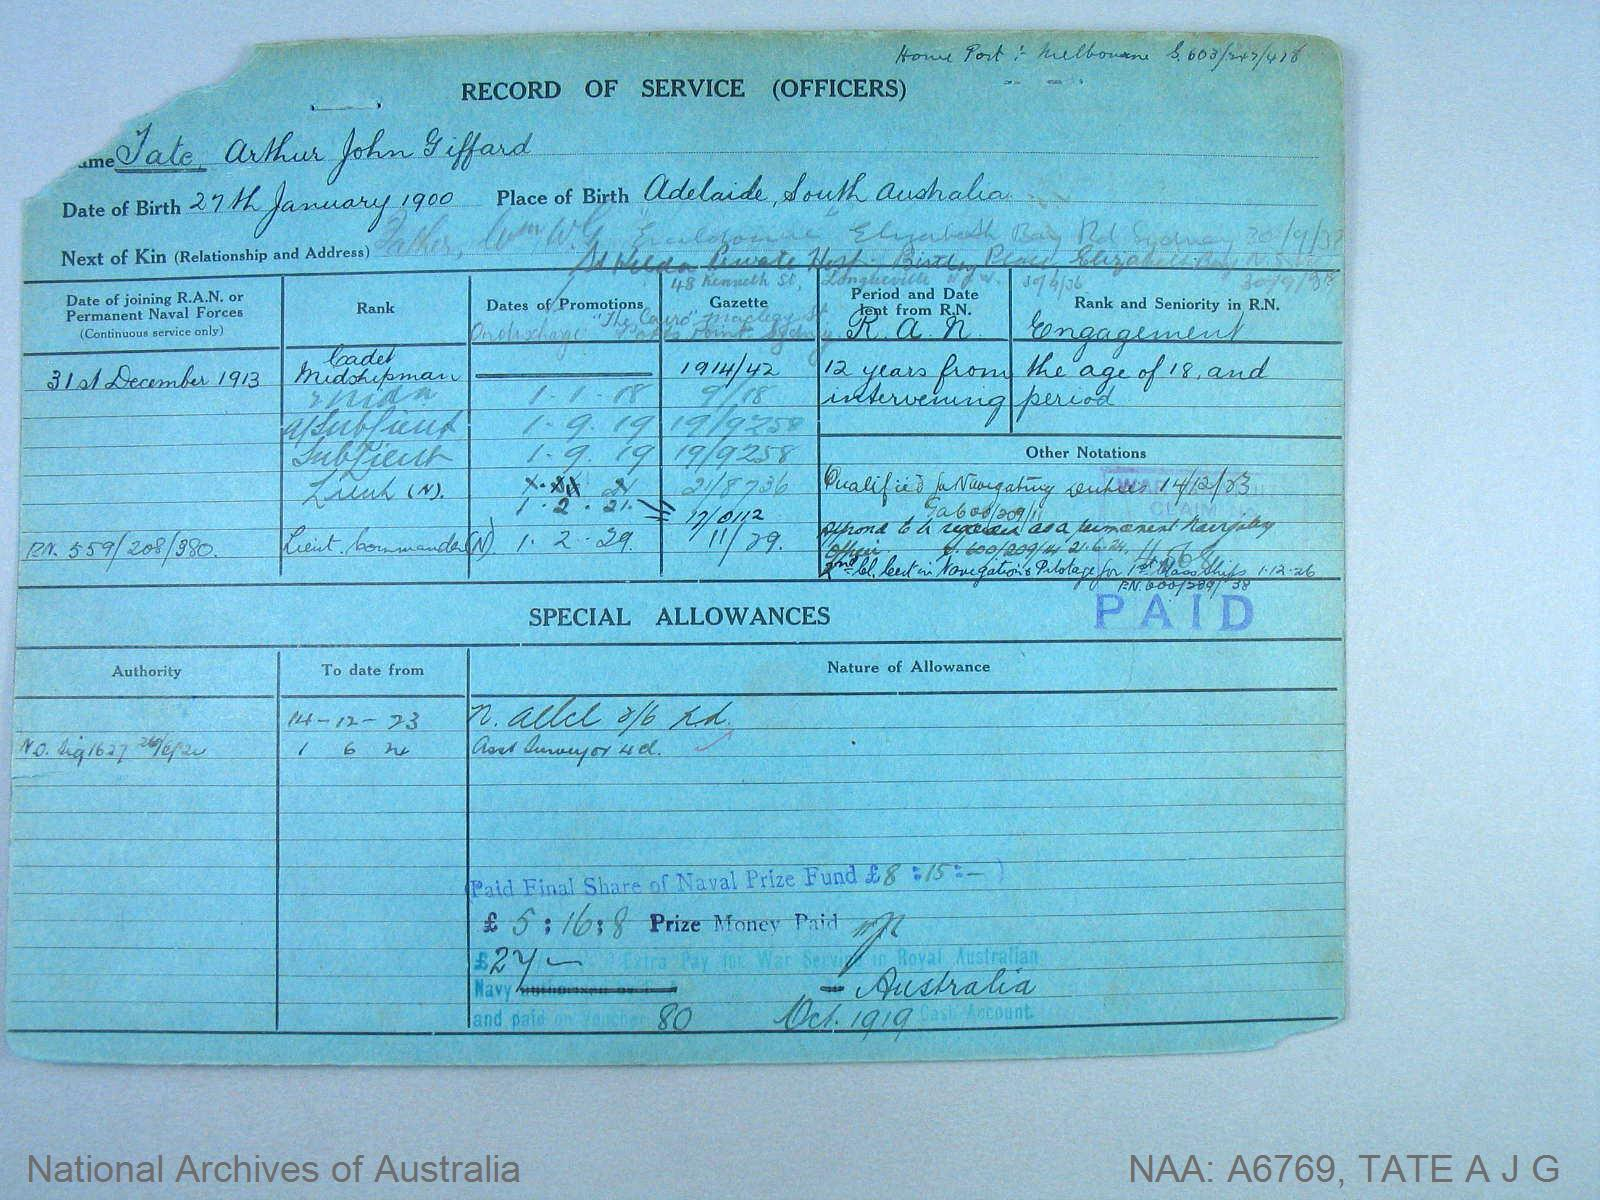 TATE ARTHUR JOHN GIFFARD : Date of birth - 27 Jan 1900 : Place of birth - ADELAIDE SA : Place of enlistment - MELBOURNE : Next of Kin - TATE WILLIAM